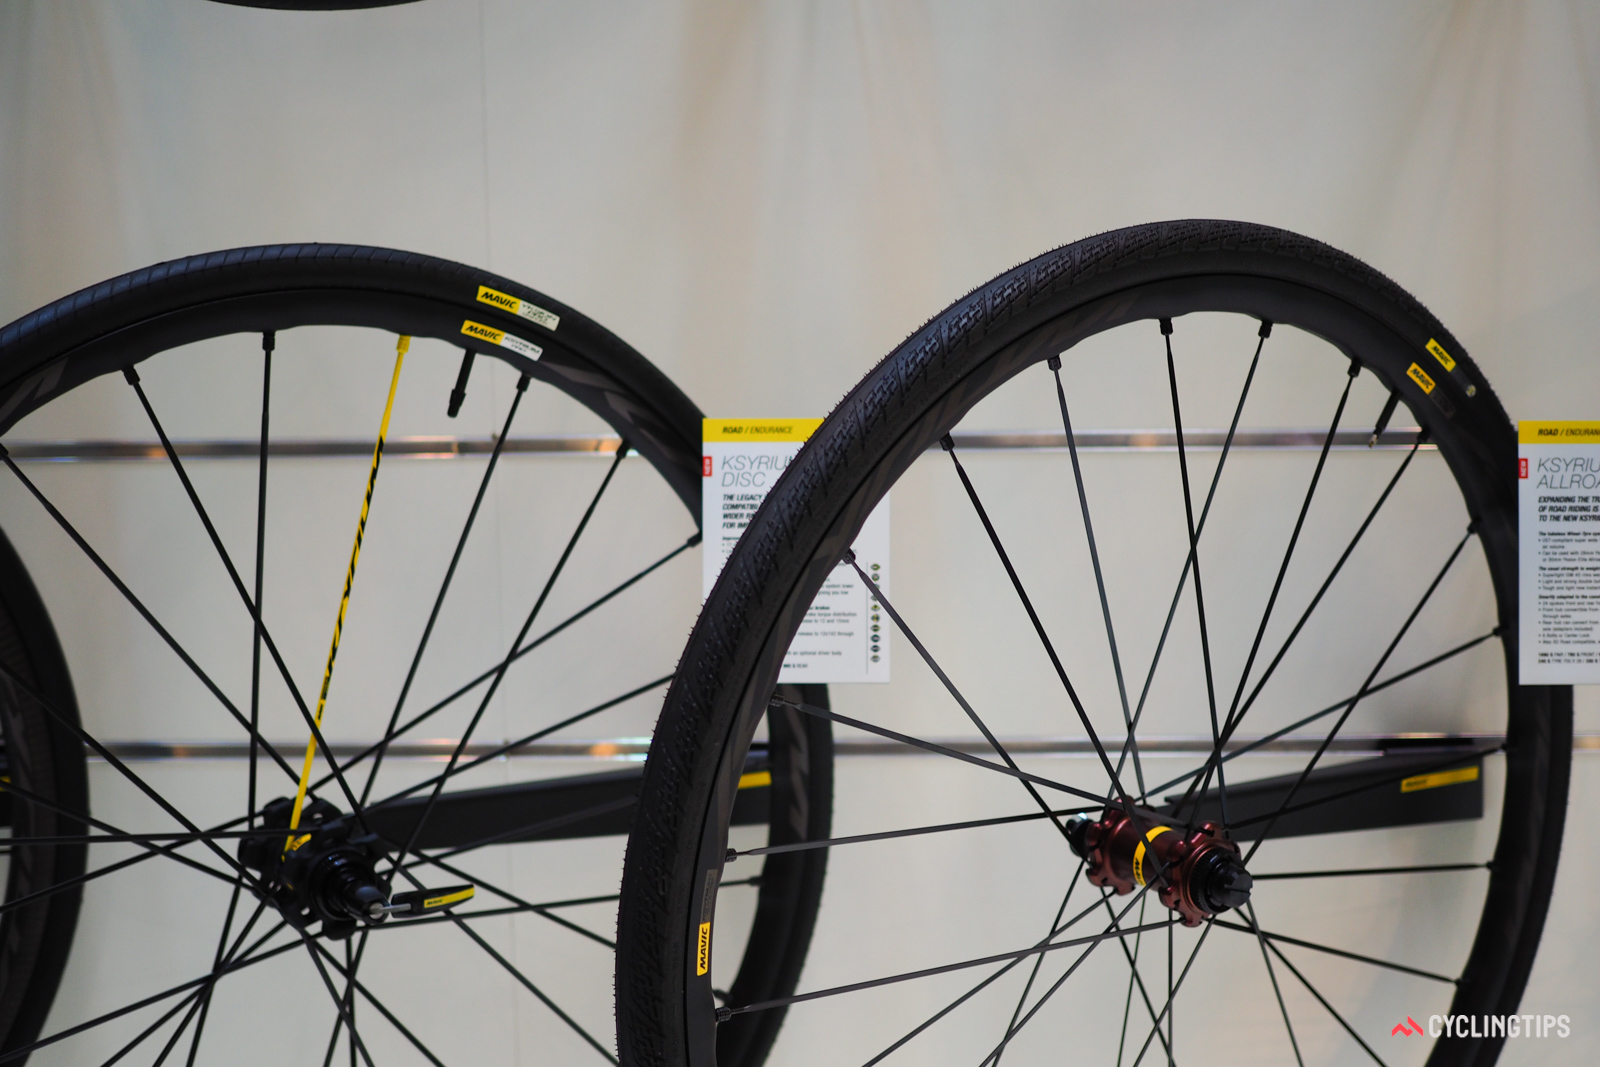 Mavic's shift away from traditional 15mm-wide road rims started with the 19mm-wide Ksyrium Pro Allroad Disc, which now has a lower-priced cousin in the Ksyrium Elite Allroad Disc (right).